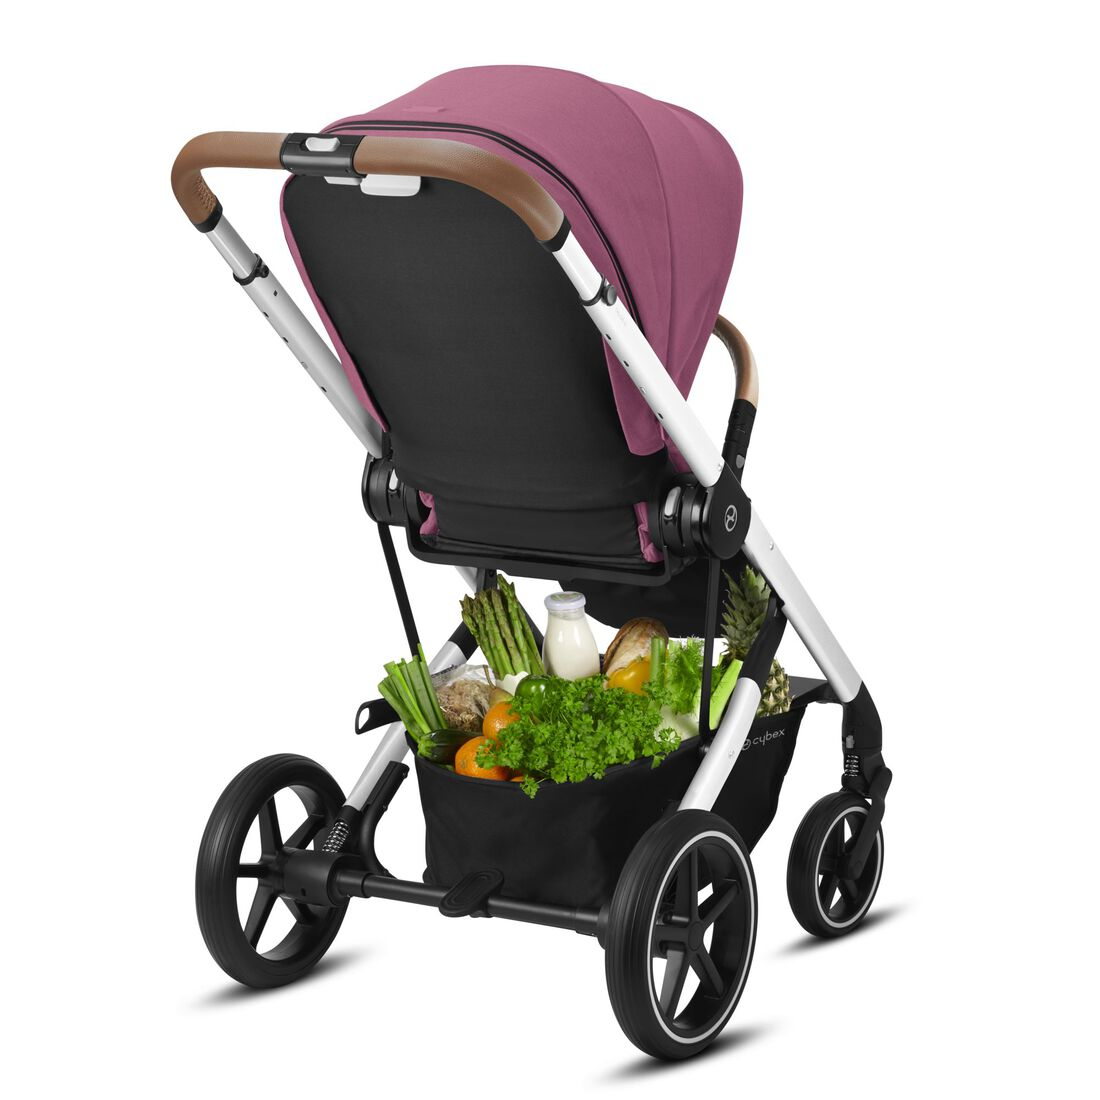 CYBEX Balios S Lux - Magnolia Pink (Silver Frame) in Magnolia Pink (Silver Frame) large image number 6